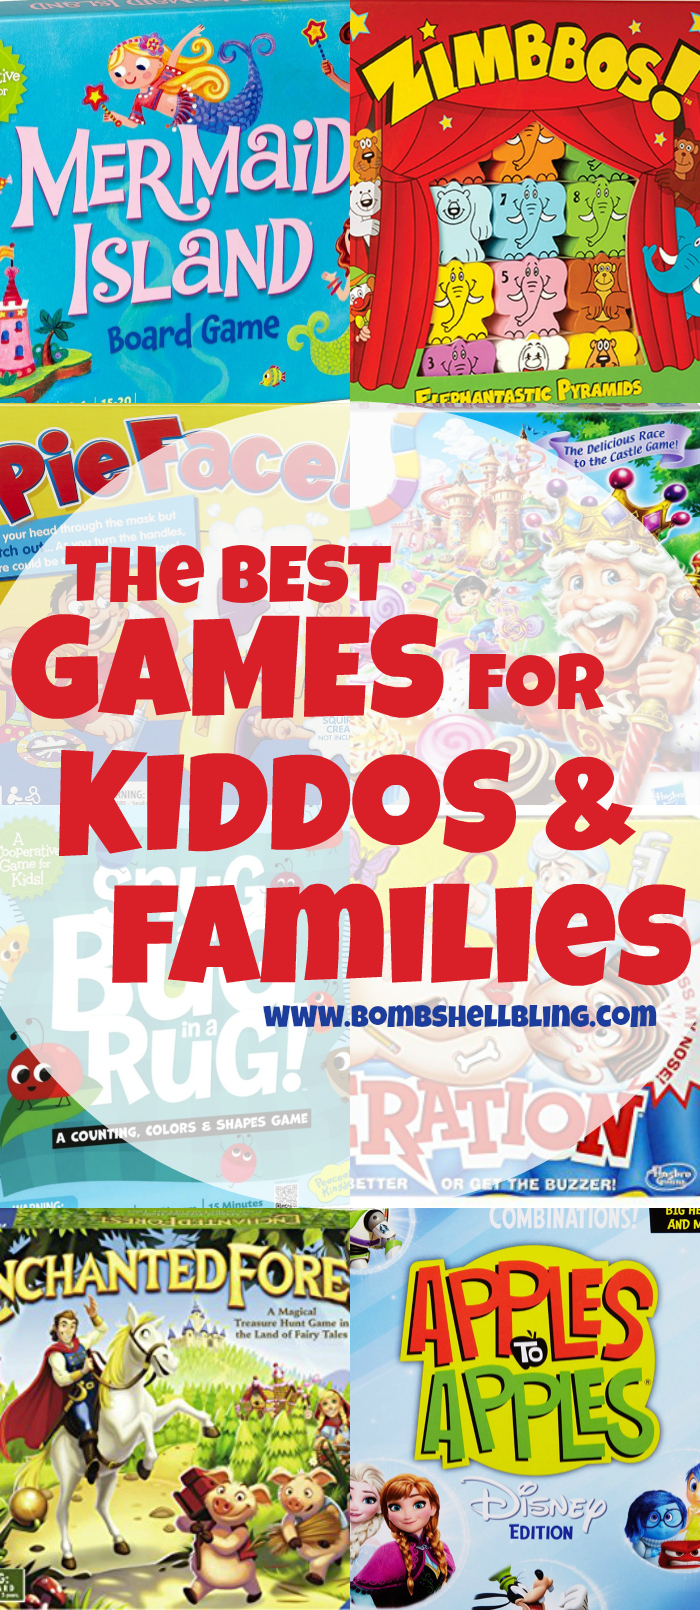 These are the 20 best board games for kids and families. Grab some today to encourage learning and social skill development. But, most of all, FUN!